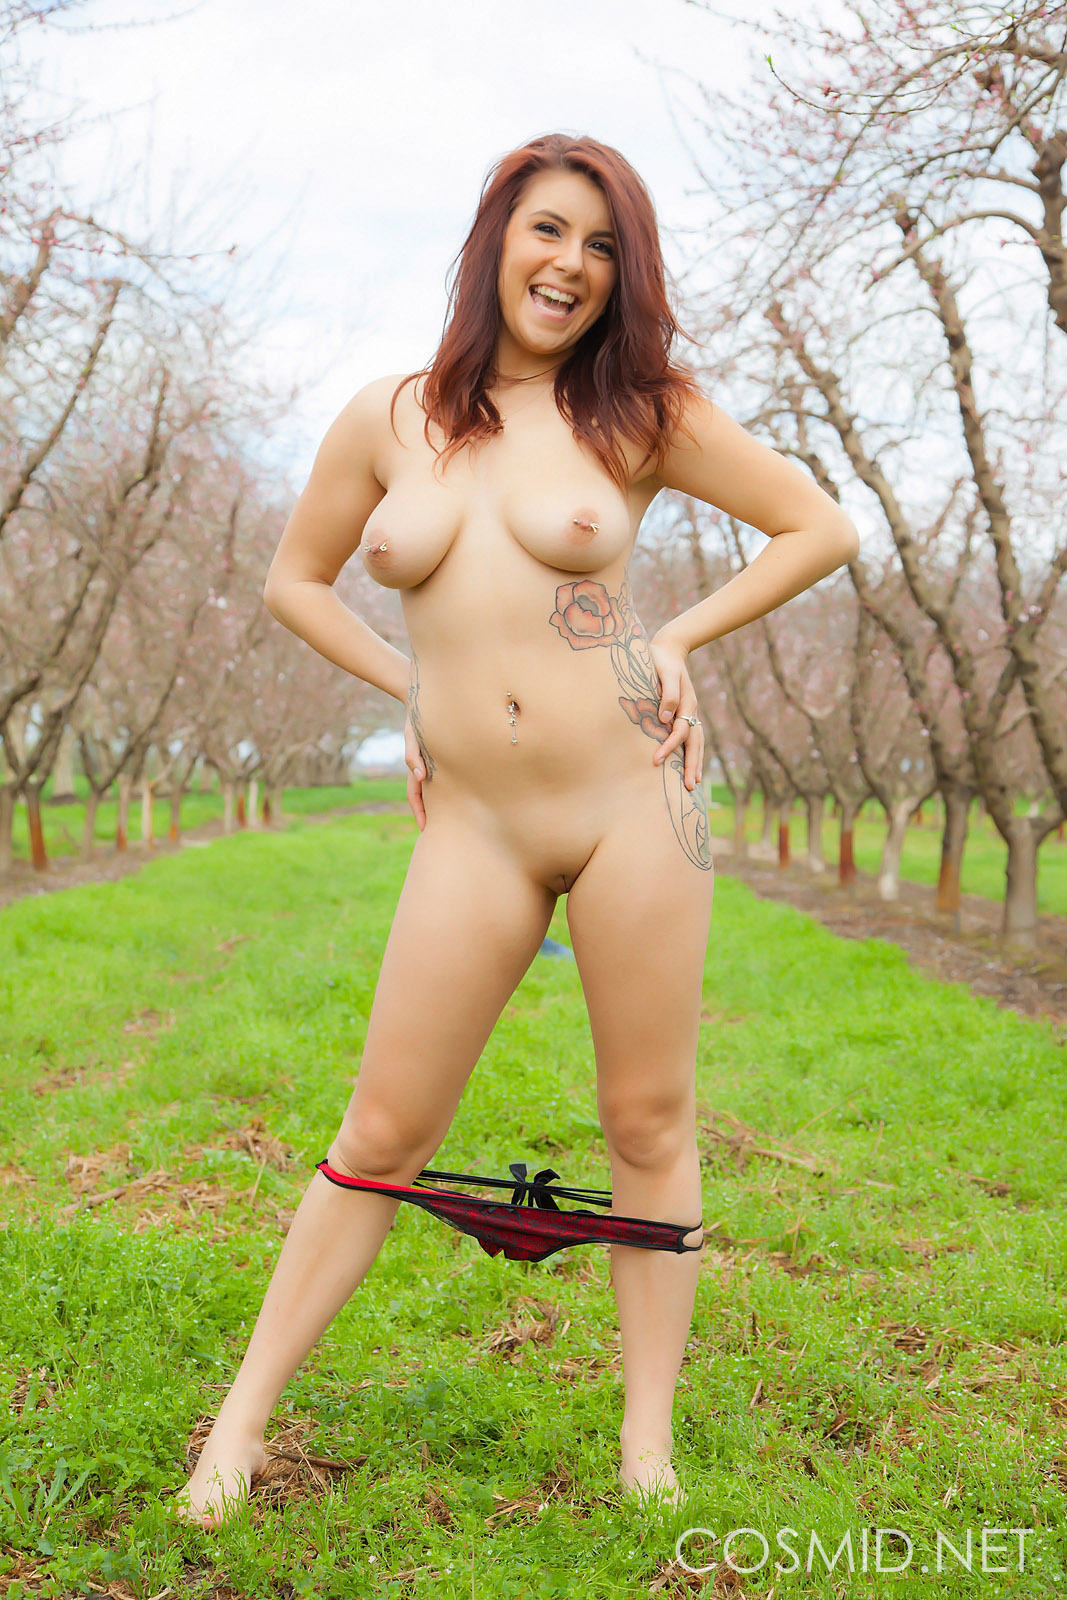 Aubrey cosmid chase naked precisely does